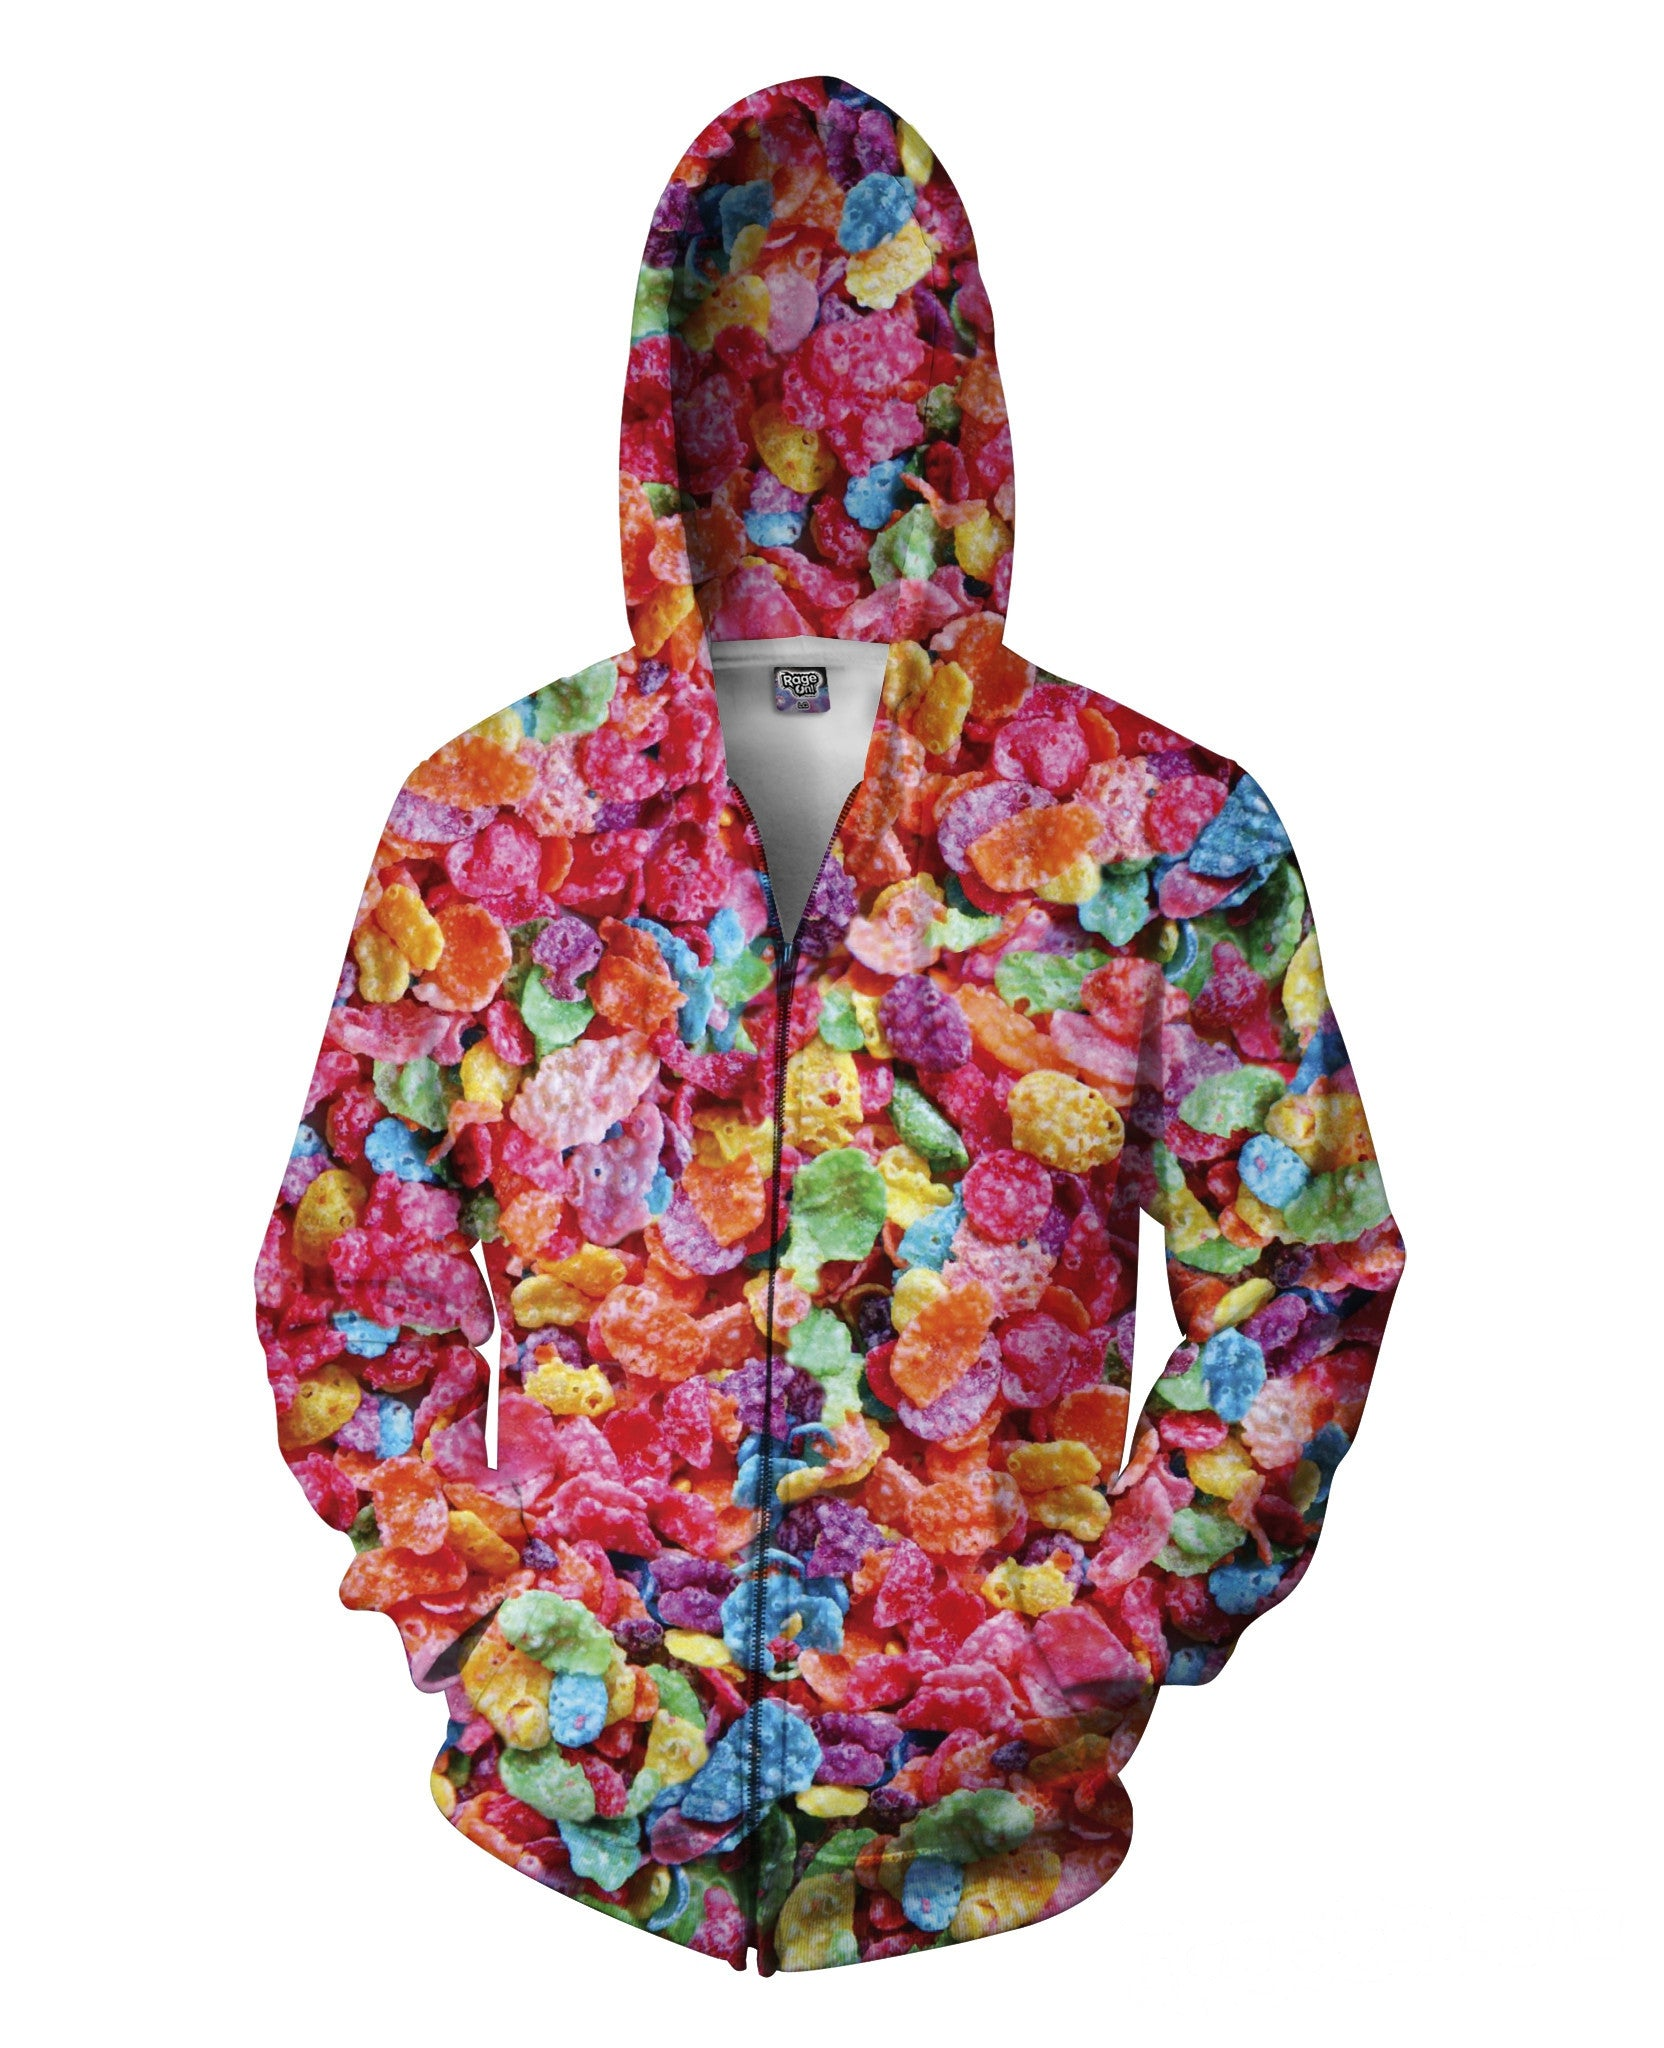 Fruity Pebbles Zip-Up Hoodie